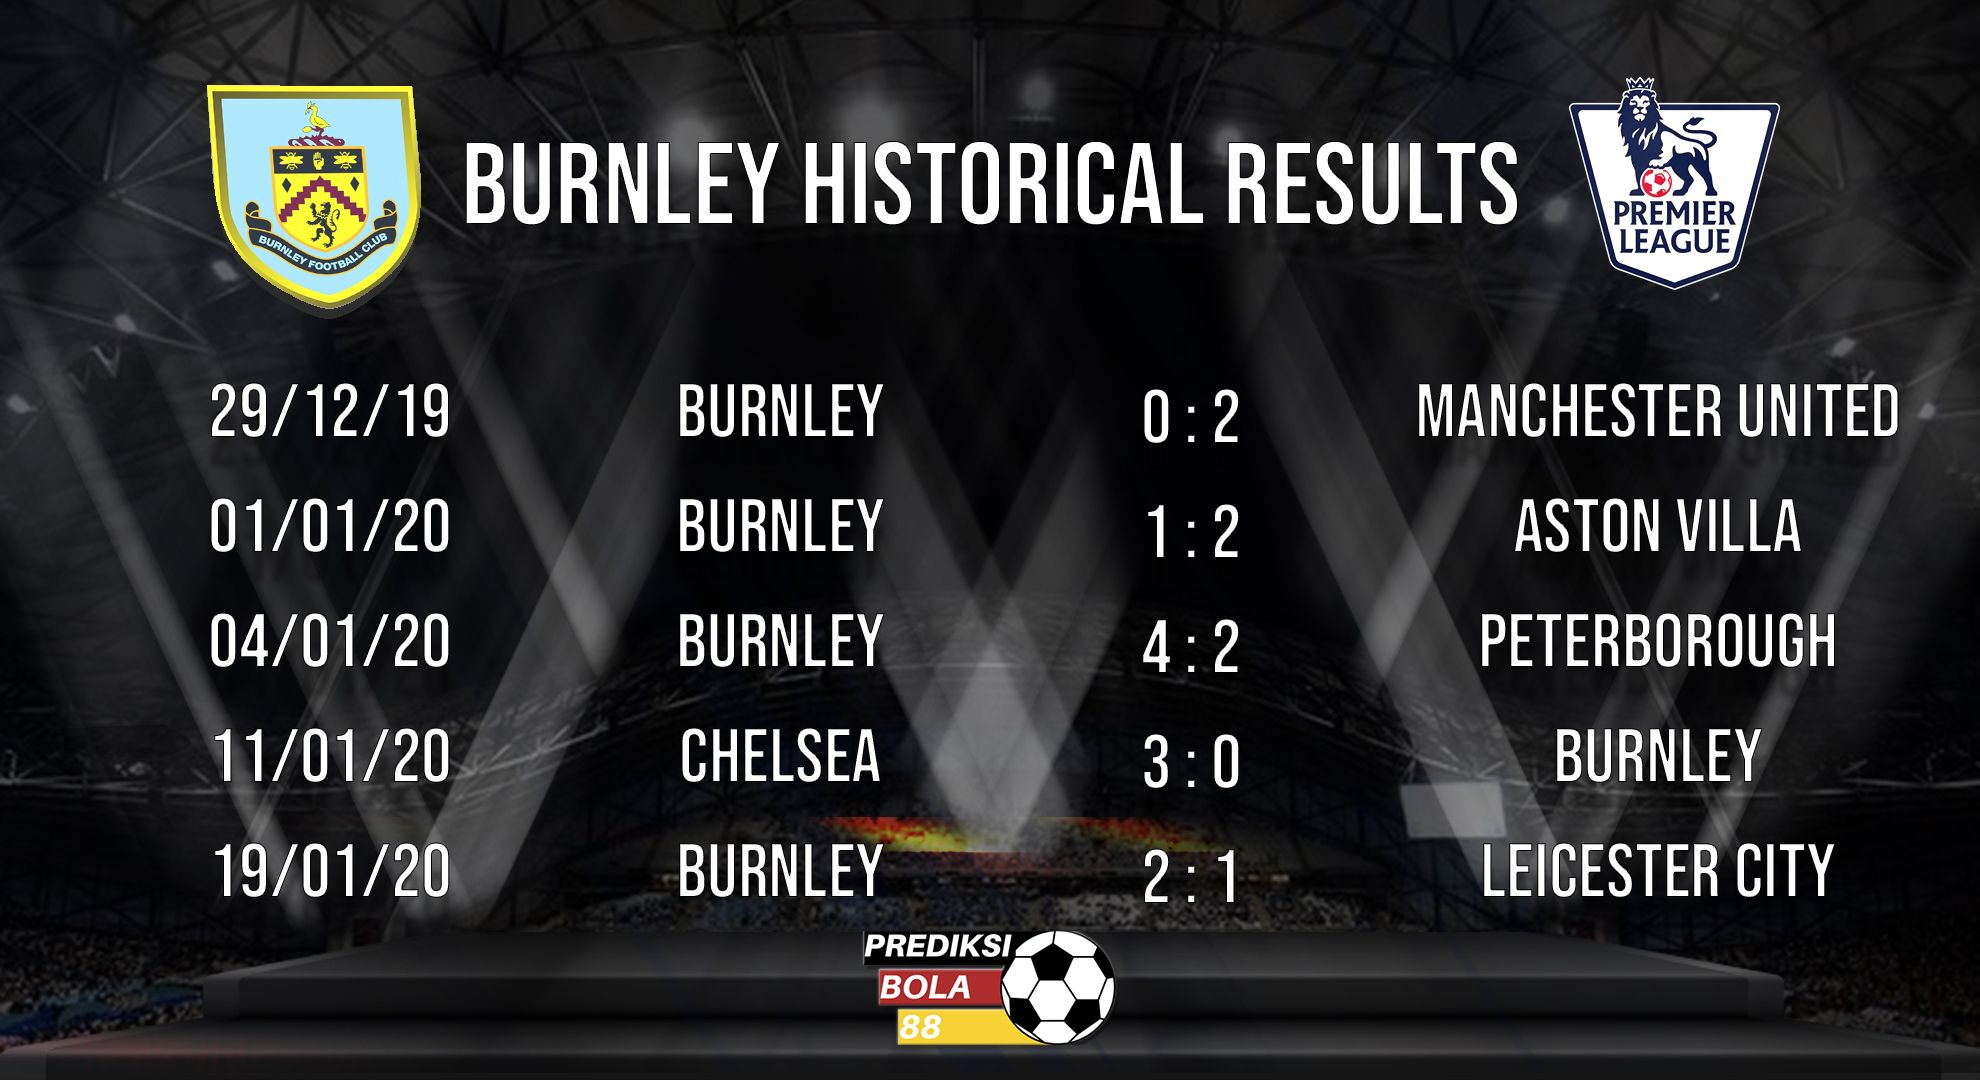 Live Manchester United Vs Burnley Historical Result Statistik Prediksi Bola In 2020 Manchester United Burnley Premier League